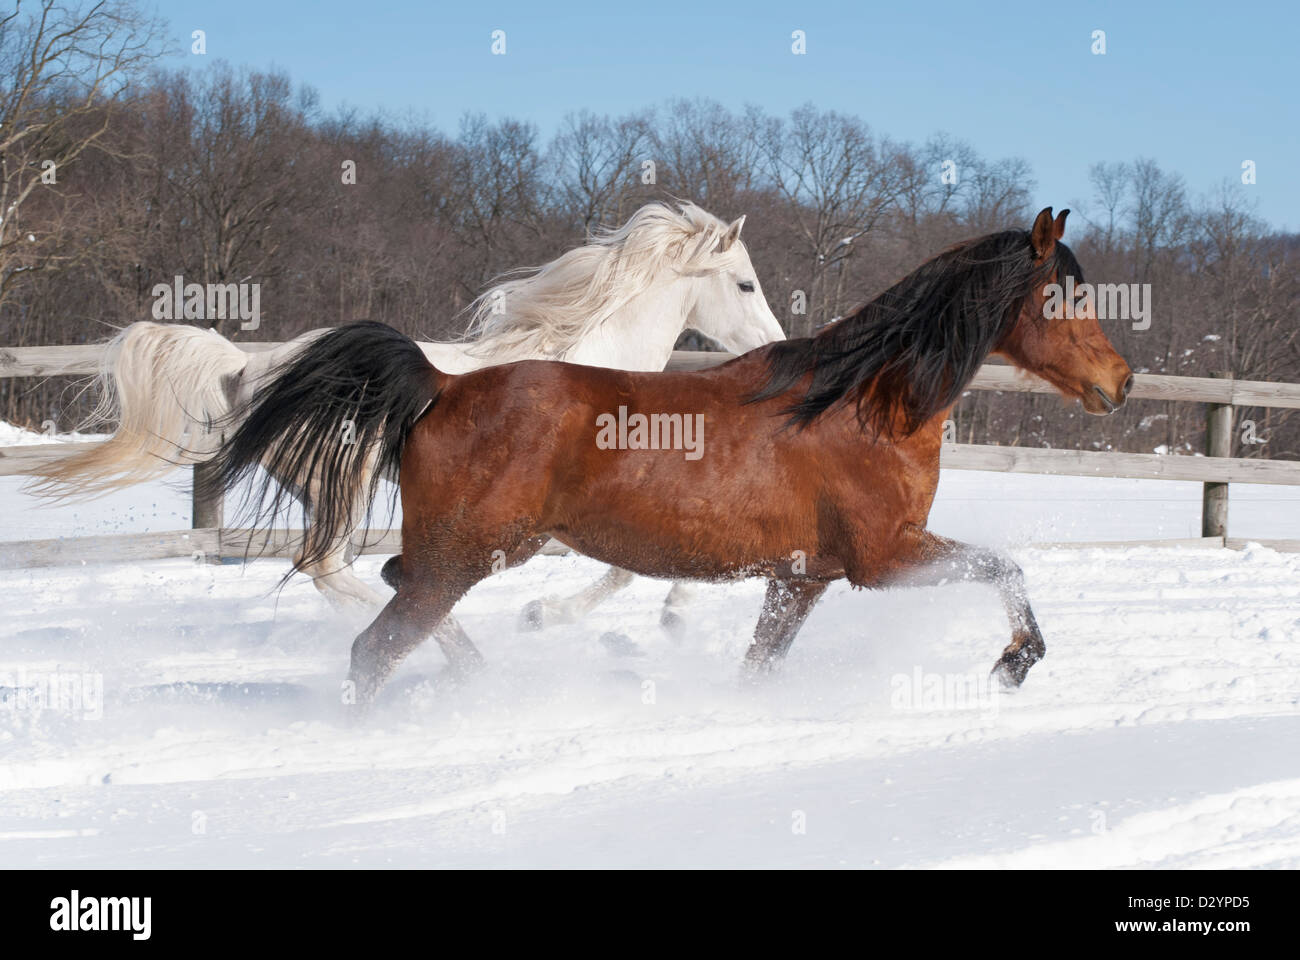 Two purebred Arabian horses, white stallion, brown mare running side by side in newly fallen snow. - Stock Image